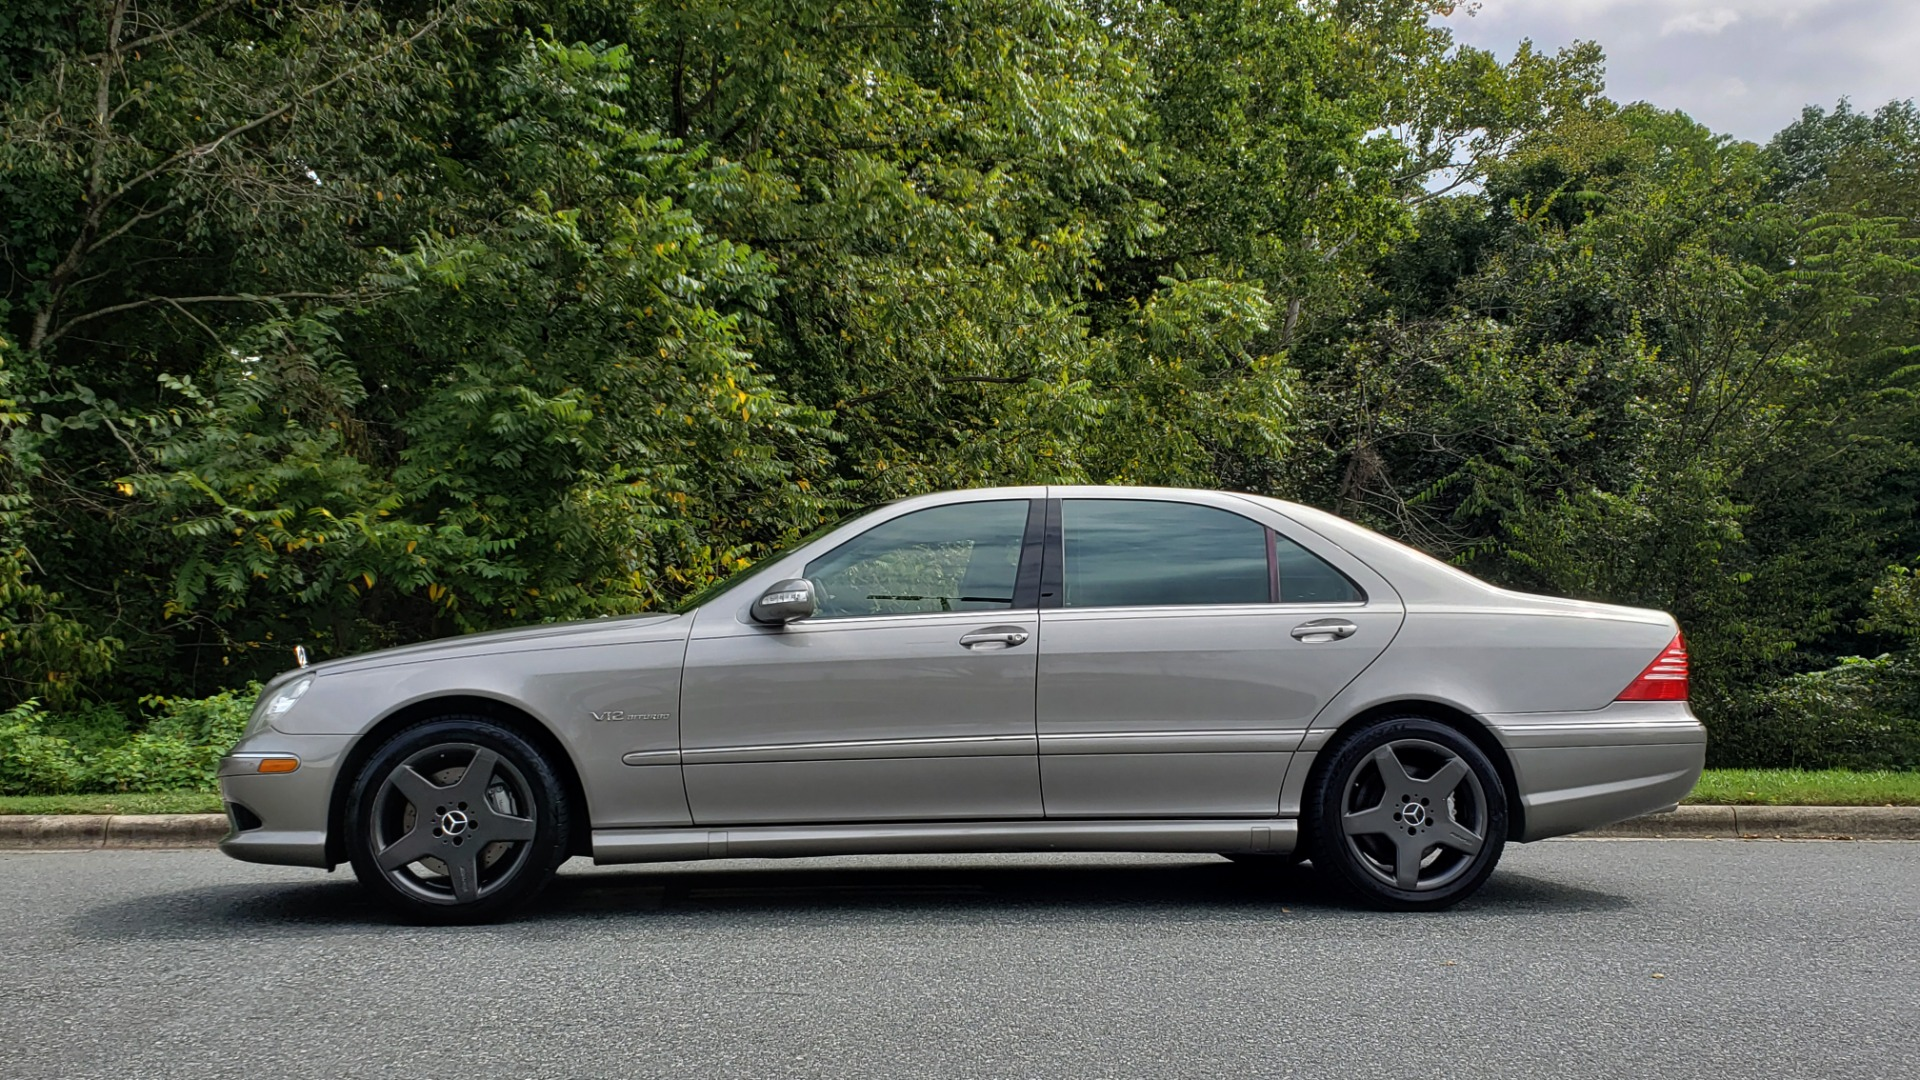 Used 2003 Mercedes-Benz S-CLASS S600 5.5L V12 SEDAN / SUNROOF / KEYLESS-GO / BOSE for sale Sold at Formula Imports in Charlotte NC 28227 2